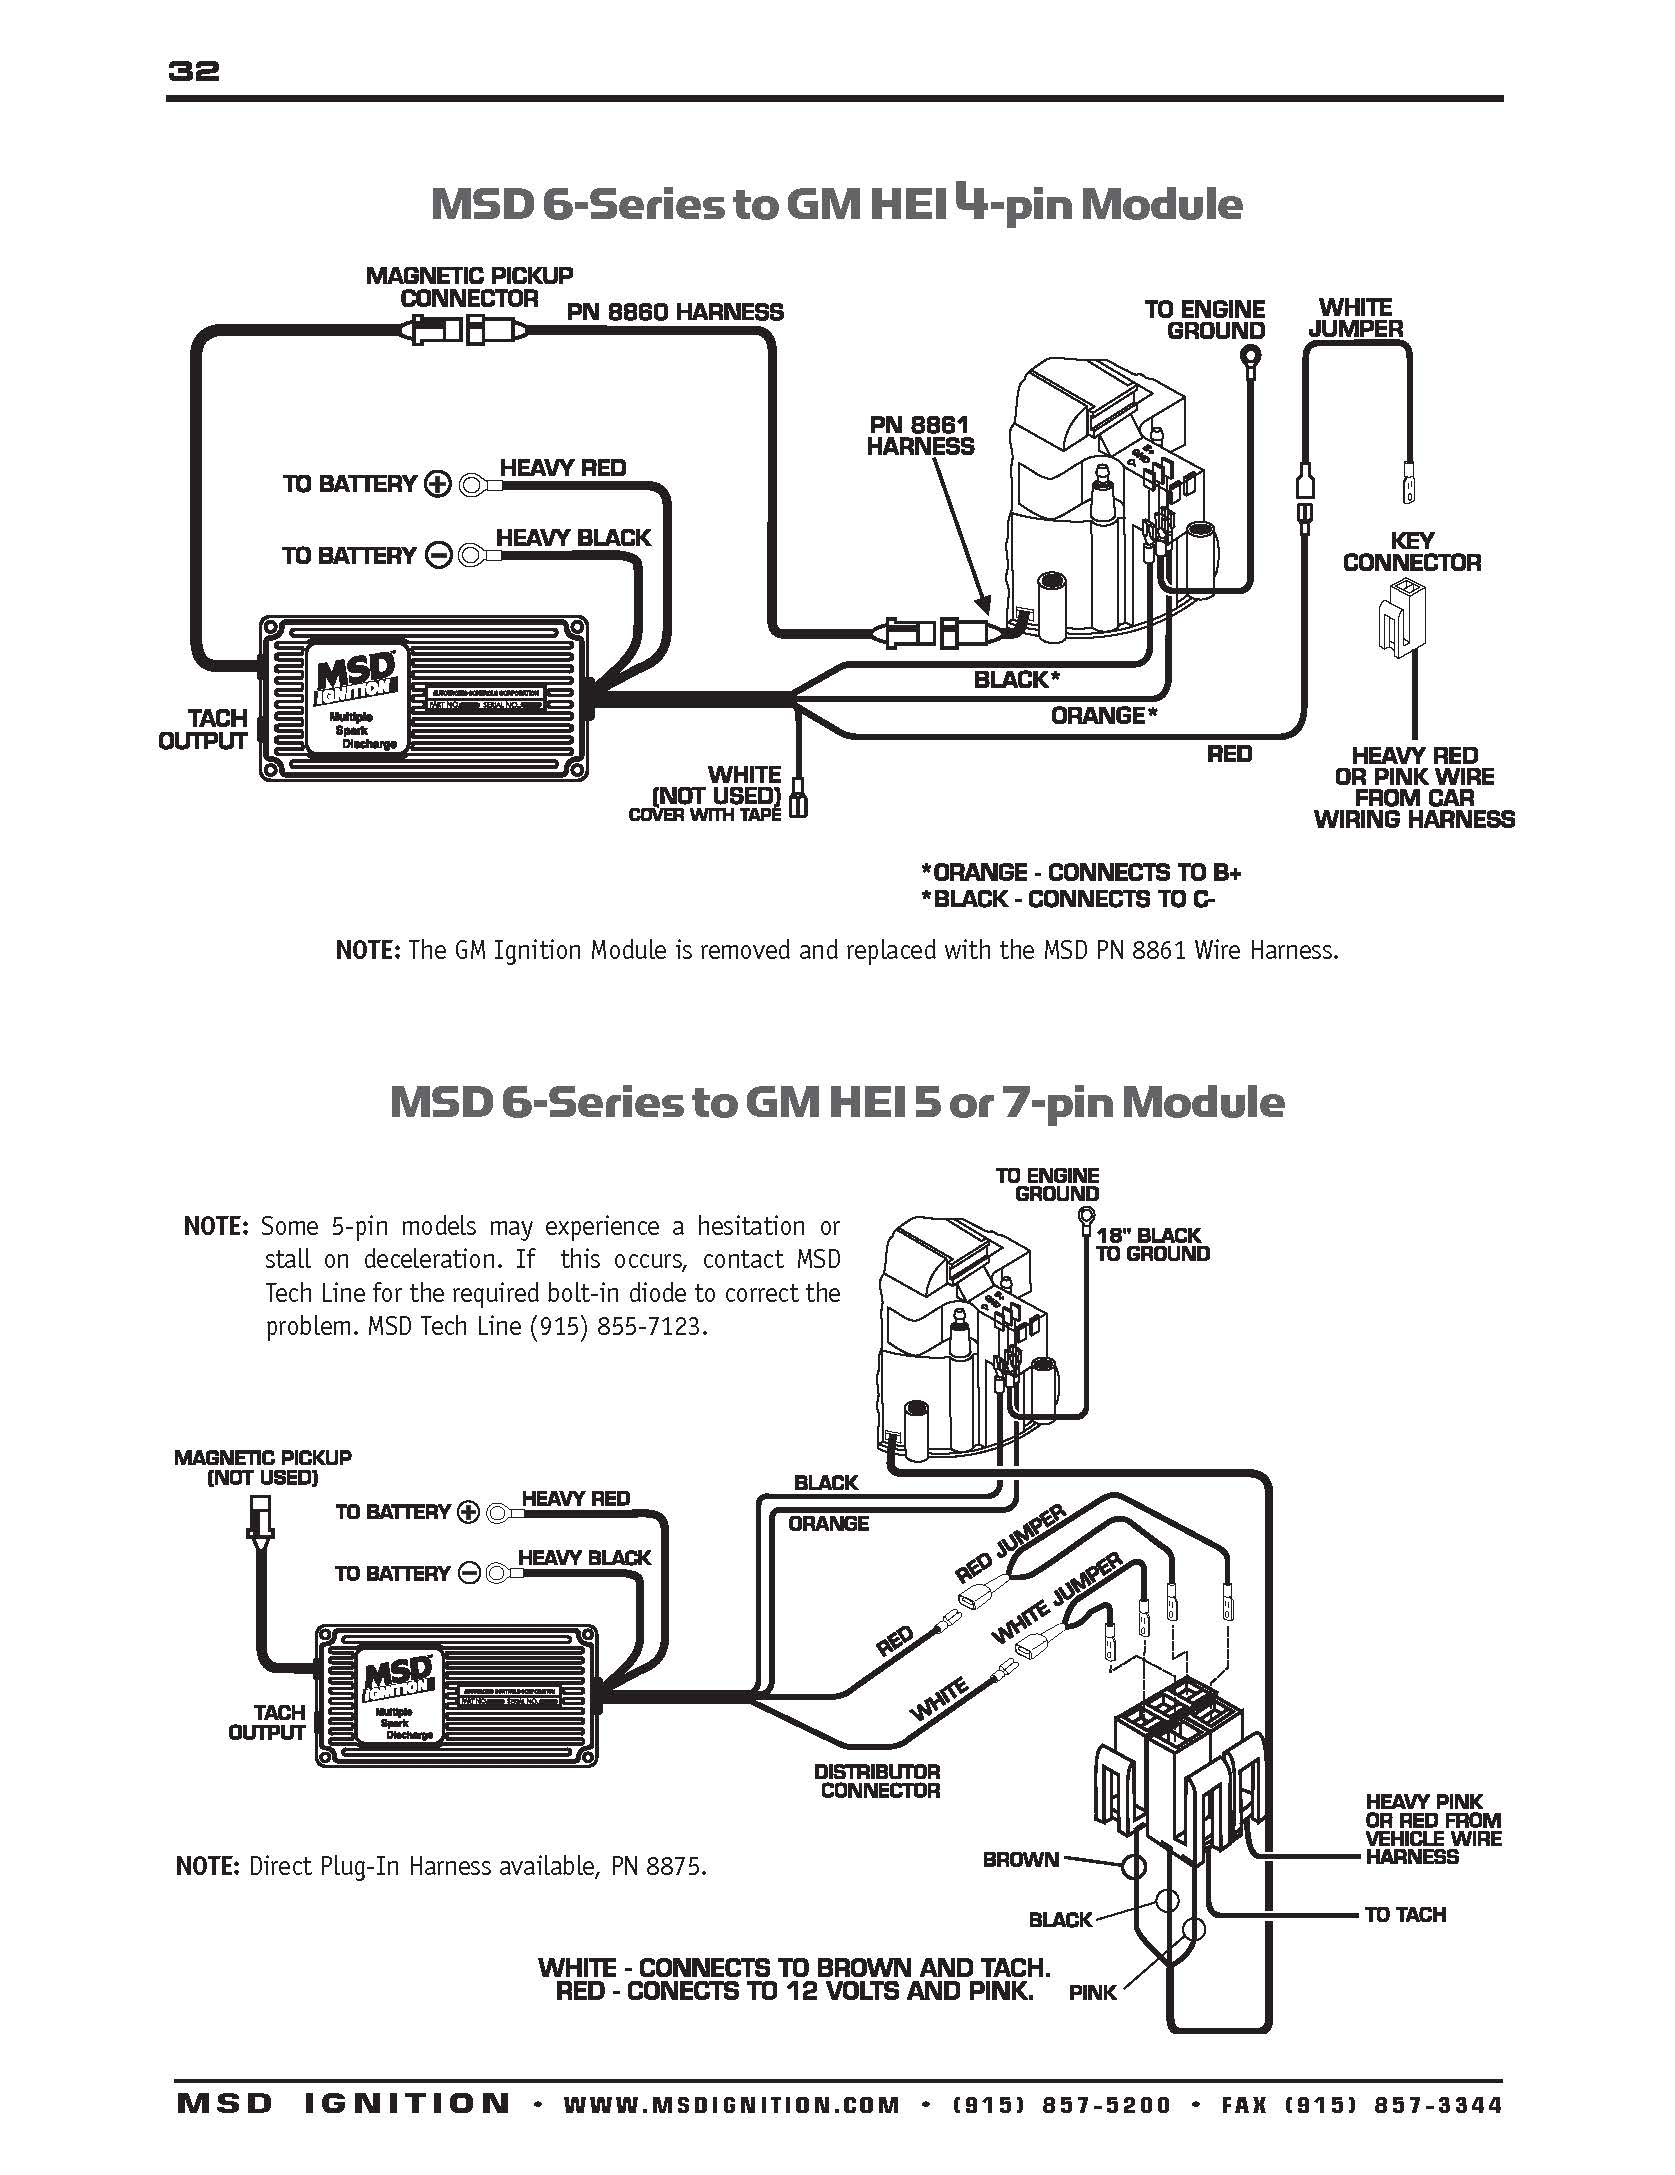 5 3l Wire Harness Diagram Wiring Diagrams Hyundai Schematic For 2003 Santa Fe